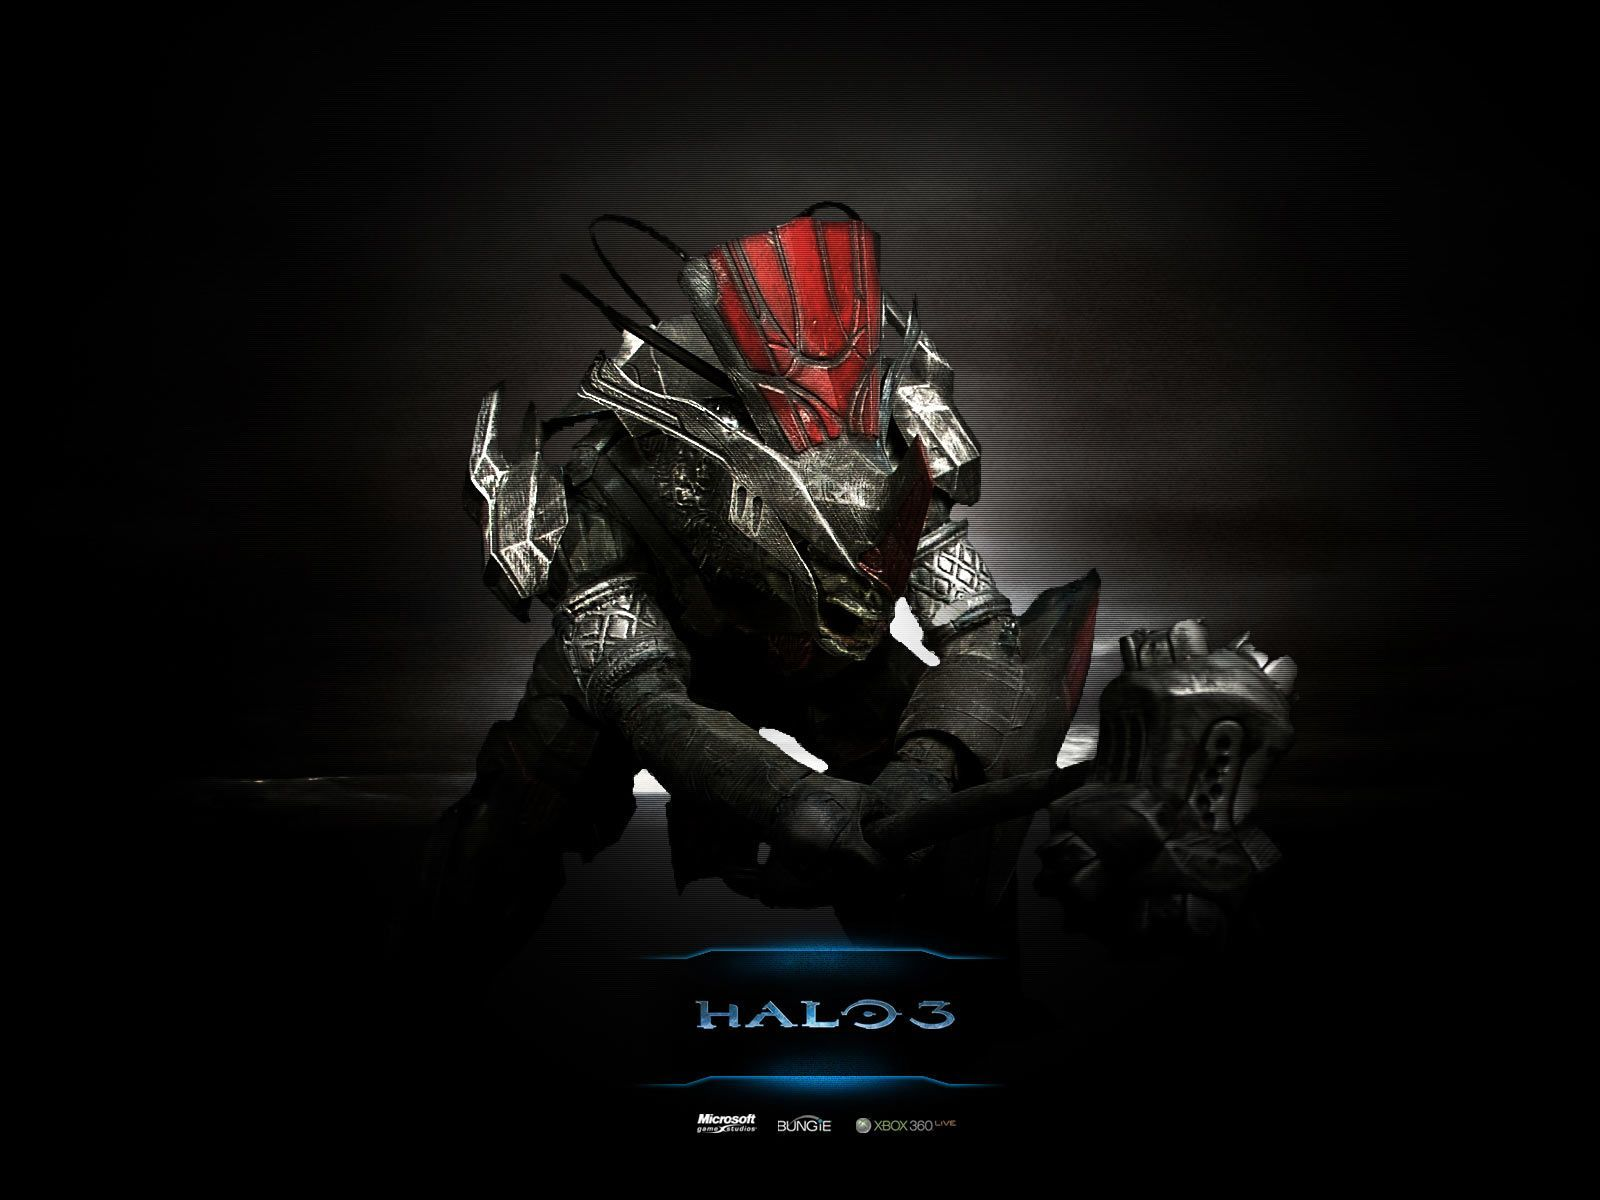 halo wallpapers wallpaper 1600×1200 halo hd wallpapers (40